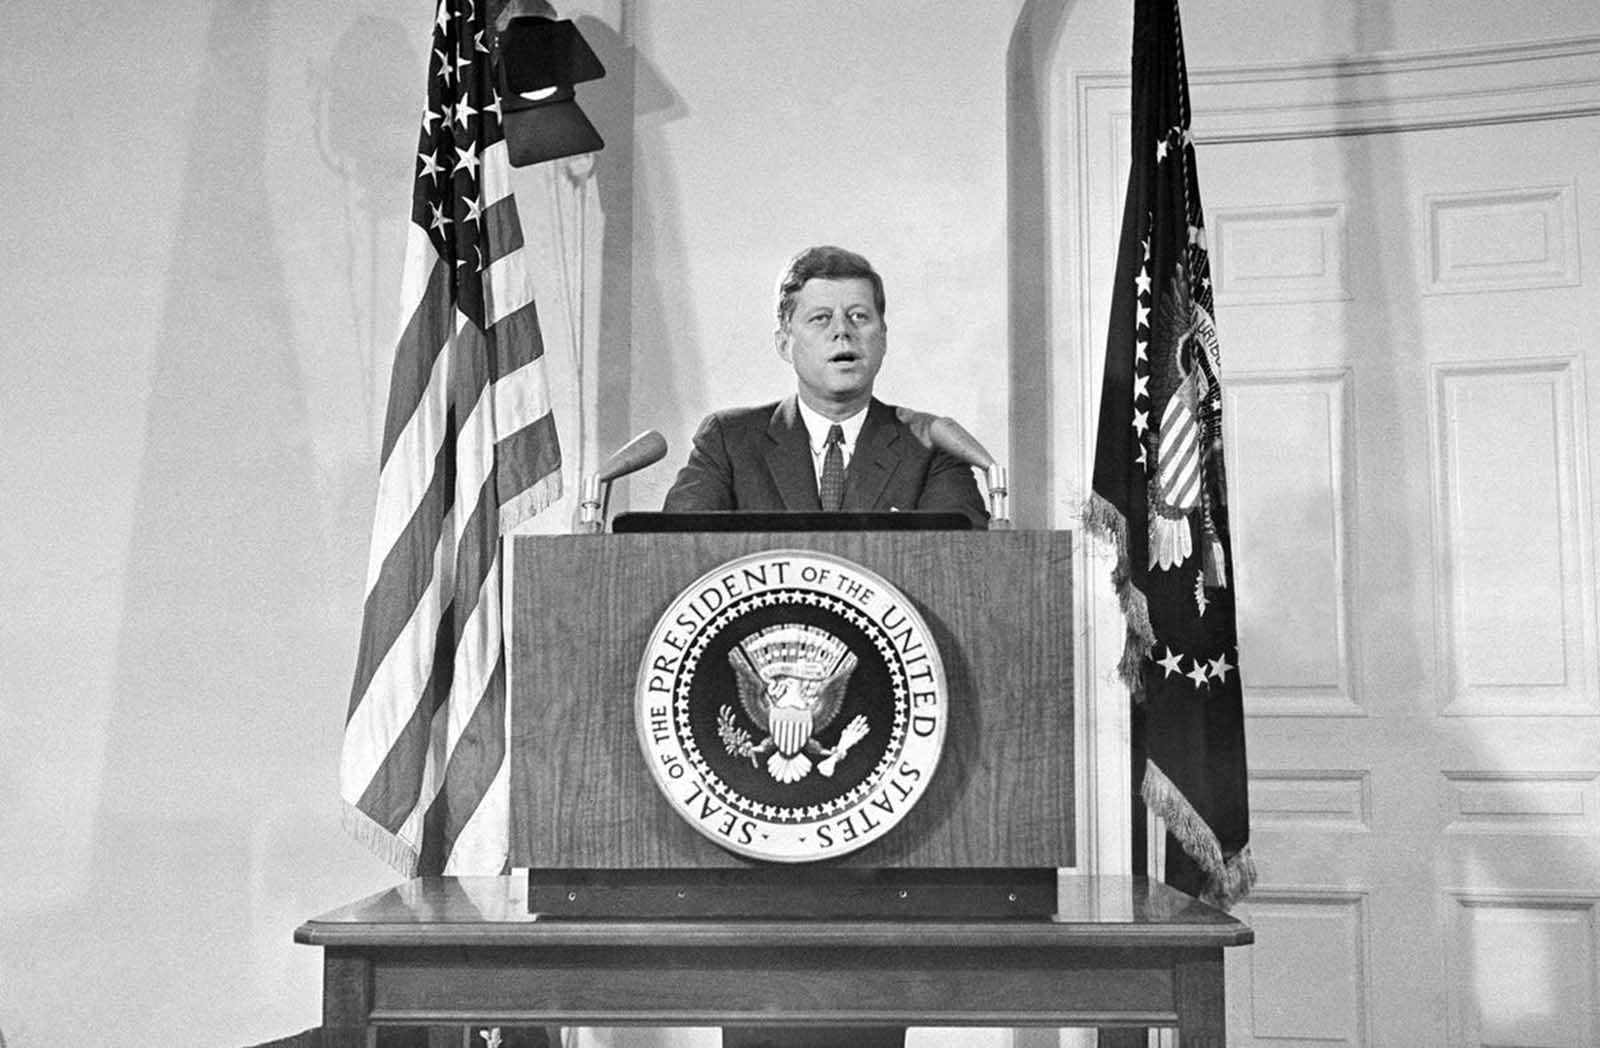 President John Kennedy reports personally to the nation on the status of the Cuban crisis, telling the American people that Soviet missile bases in Cuba are